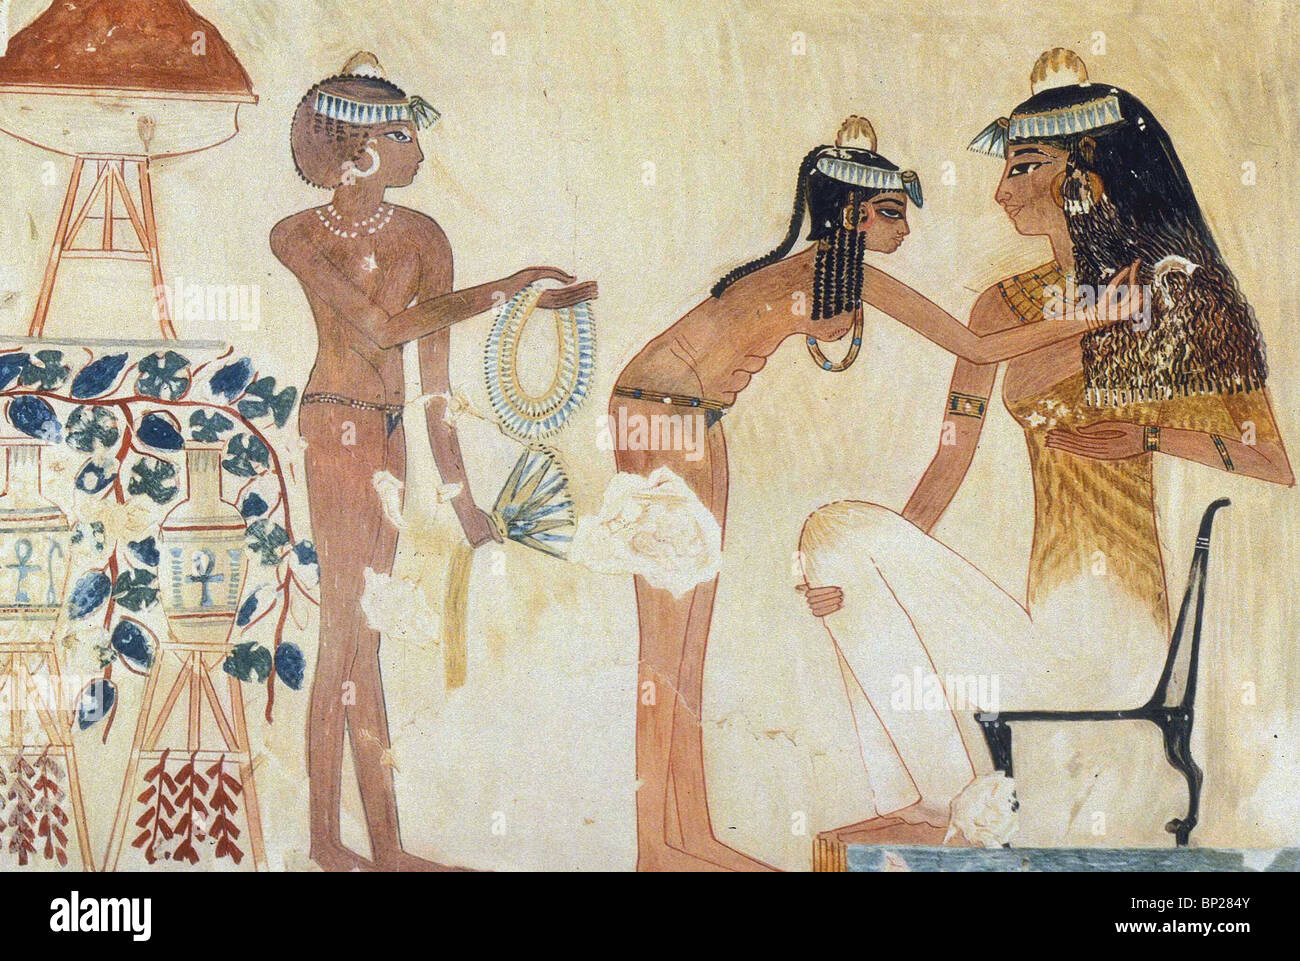 1833. AN EGYPTIAN LADY GETTING DRESSED BY HER MAIDS, WALL PAINTING FROM THEBES, TUTHMOSIS IV. 1420 - 1411 - Stock Image